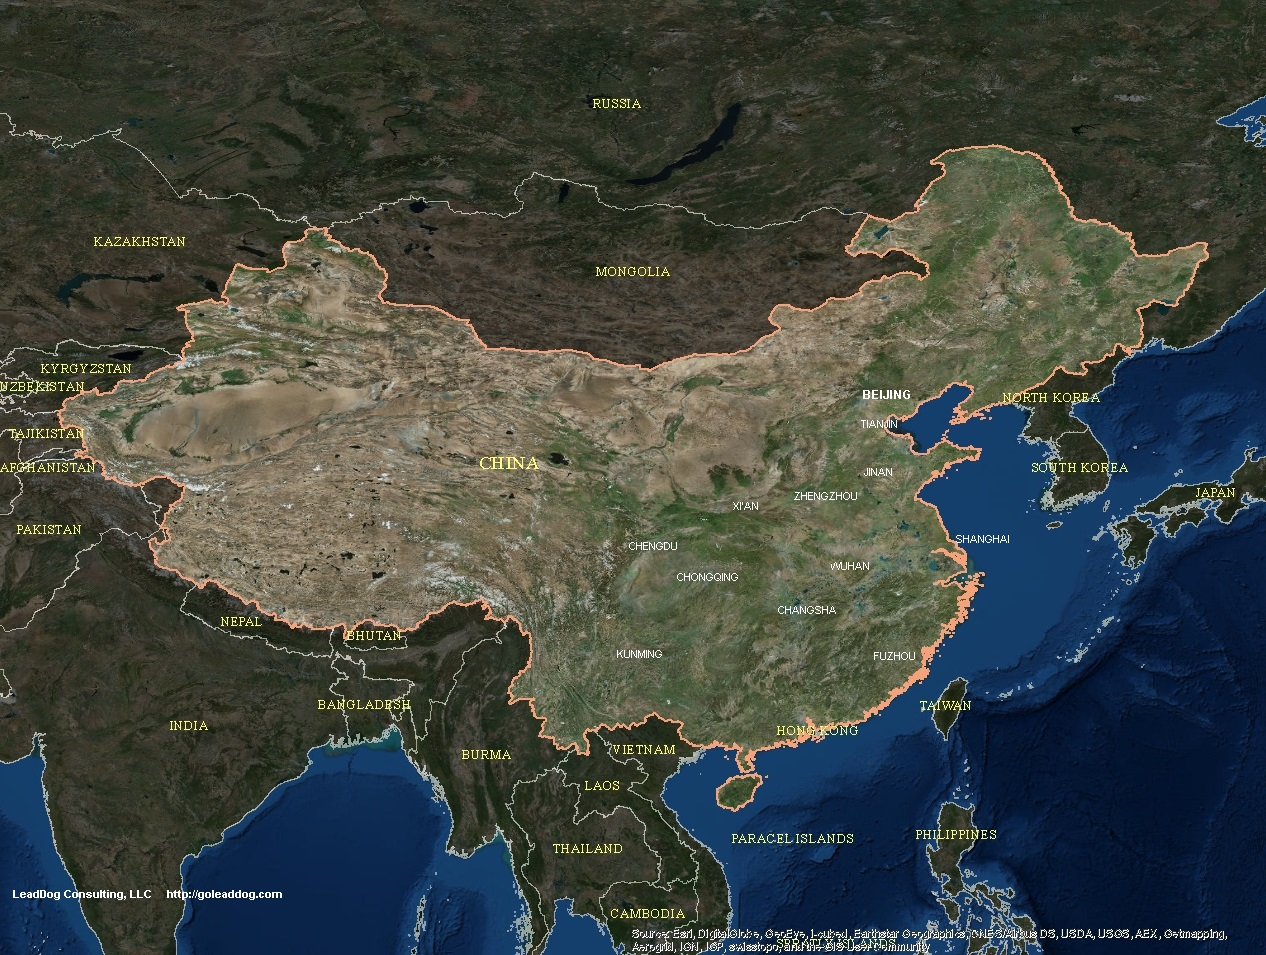 google earth satellite map live with Exista Dovezi Teritoriul Chinei A Fost Acoperit De Ape In Urma Cu Aproximativ 4000 De Ani 2705951 on Exista Dovezi Teritoriul Chinei A Fost Acoperit De Ape In Urma Cu Aproximativ 4000 De Ani 2705951 moreover Antarctica Map also Have You Seen Your House From Earth Satellite View also 20 صورة مذهلة للأرض من الفضاء also The Strange Mystery Of North Sentinel Island.